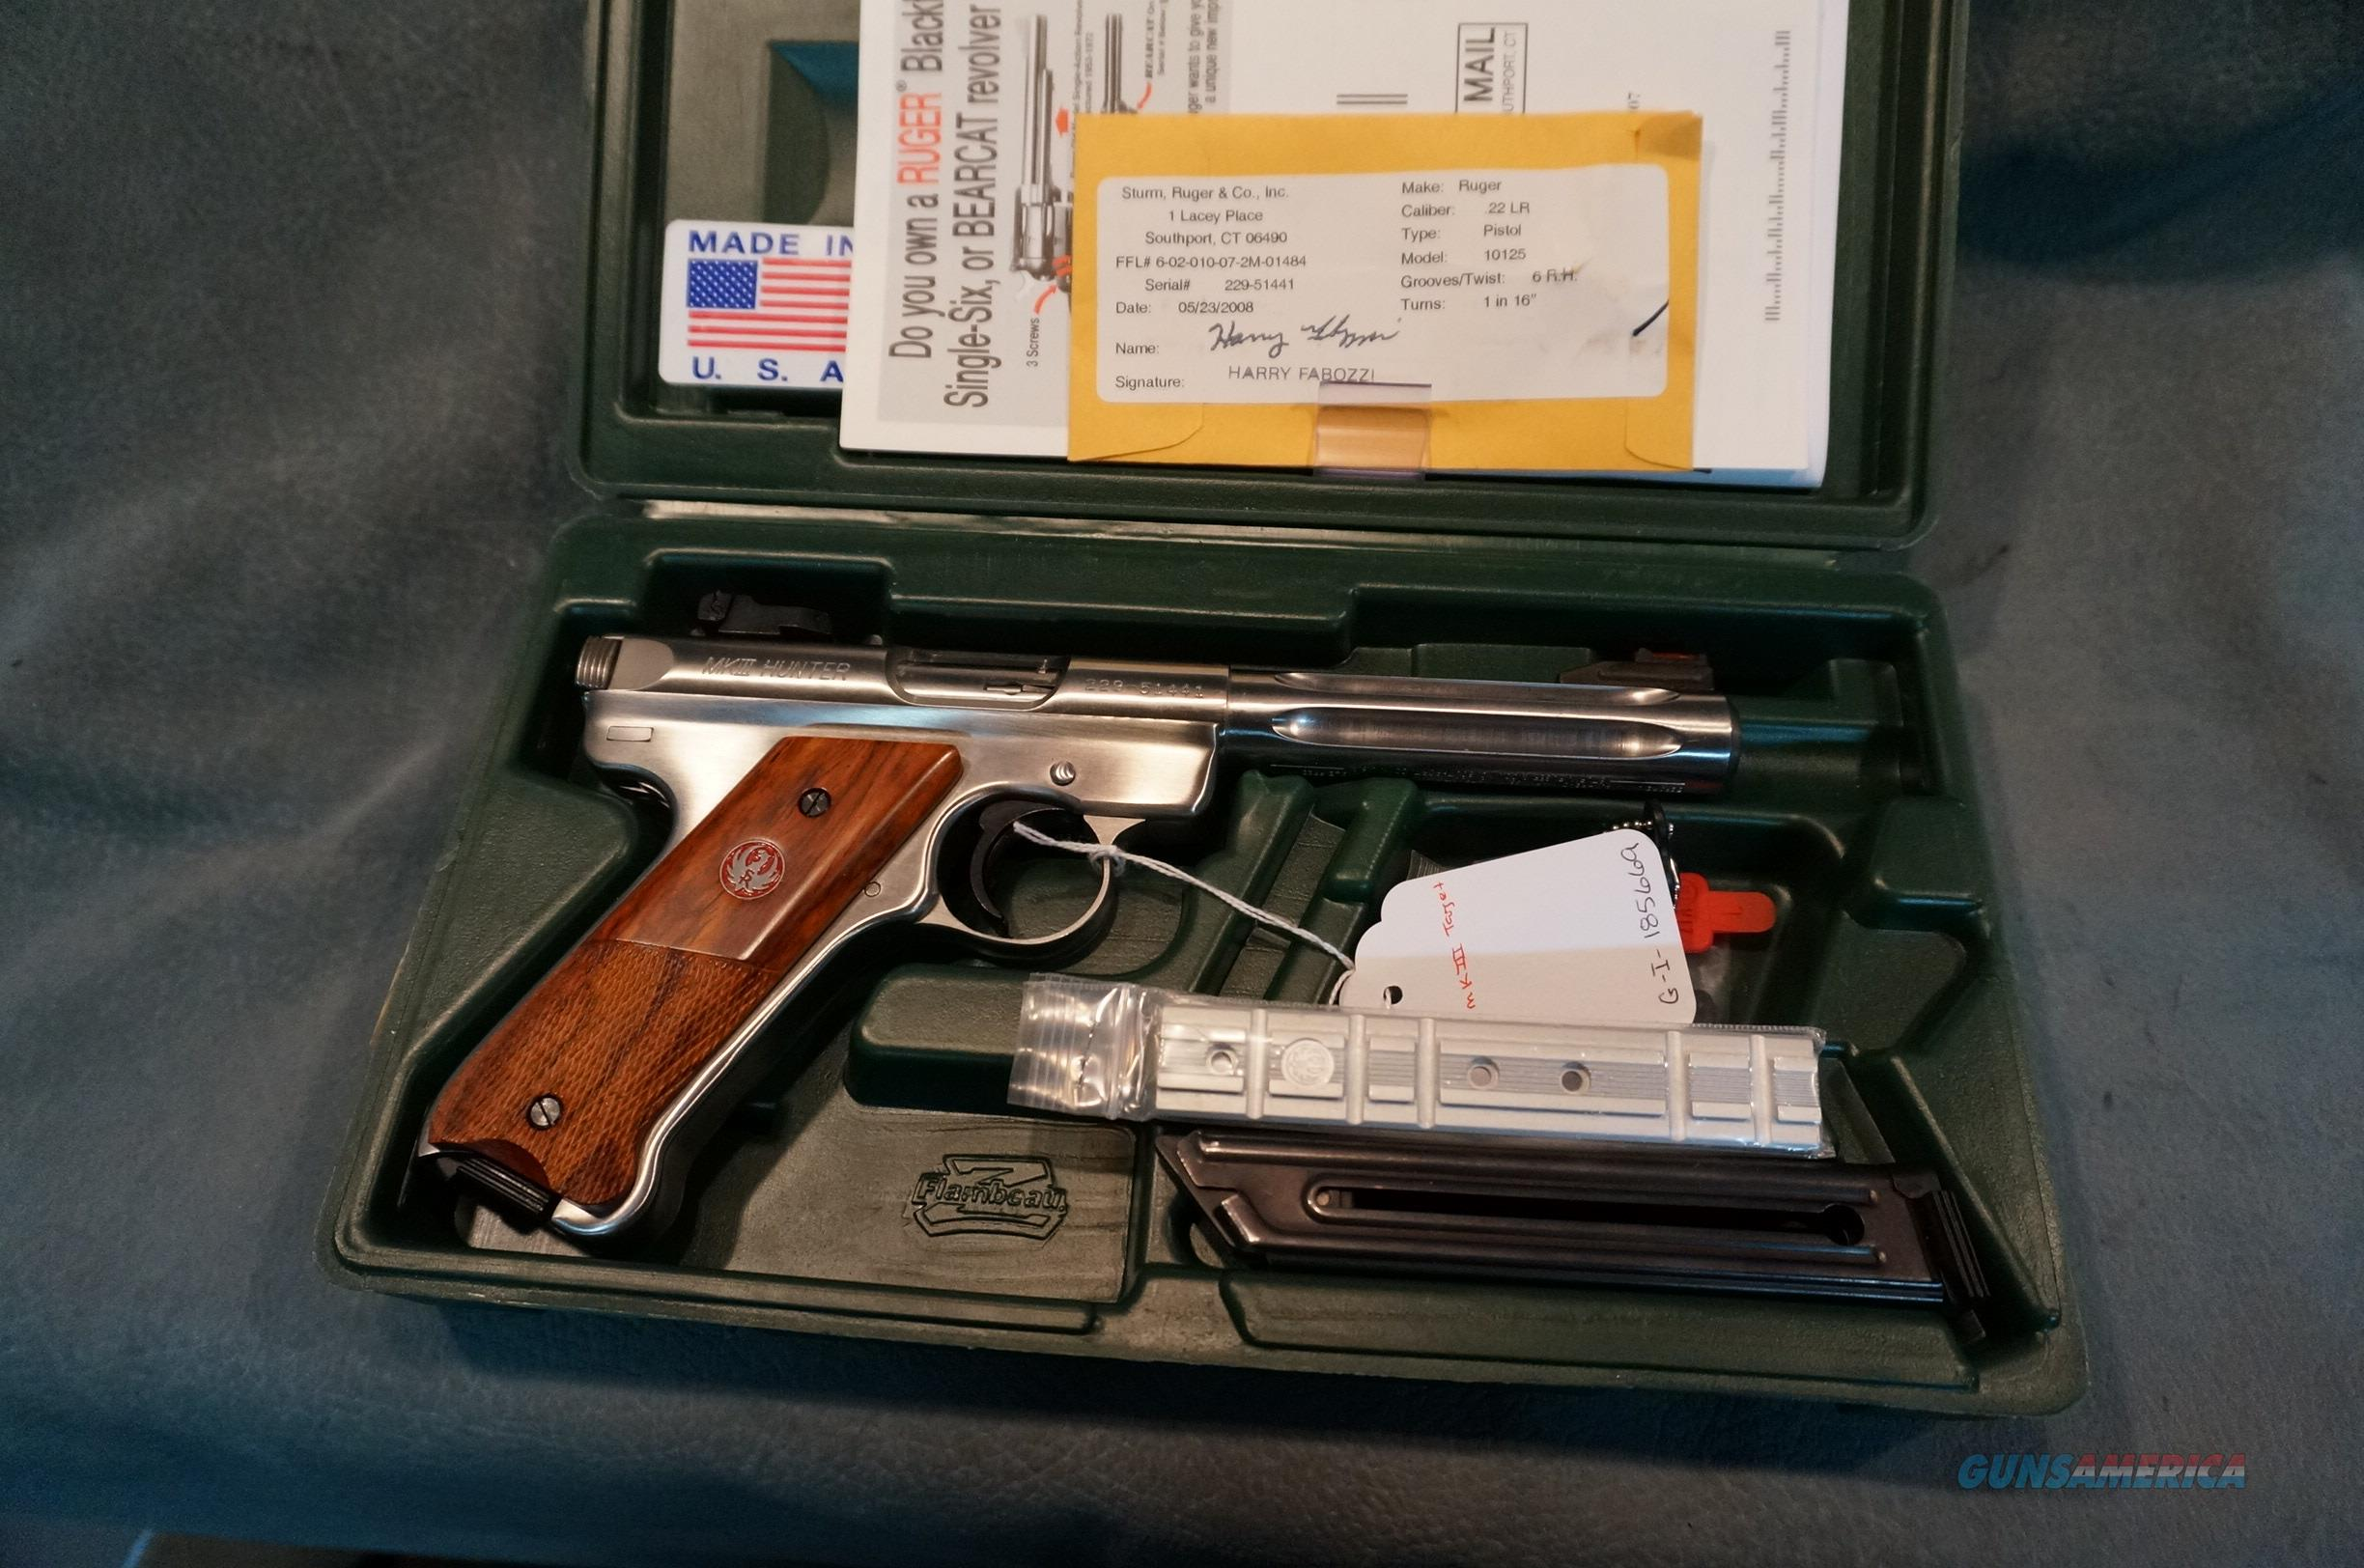 "Ruger Mark III 22LR 5 1/2"" stainless heavy barrel KMKIII512H  Guns > Pistols > Ruger Semi-Auto Pistols > Mark I/II/III/IV Family"